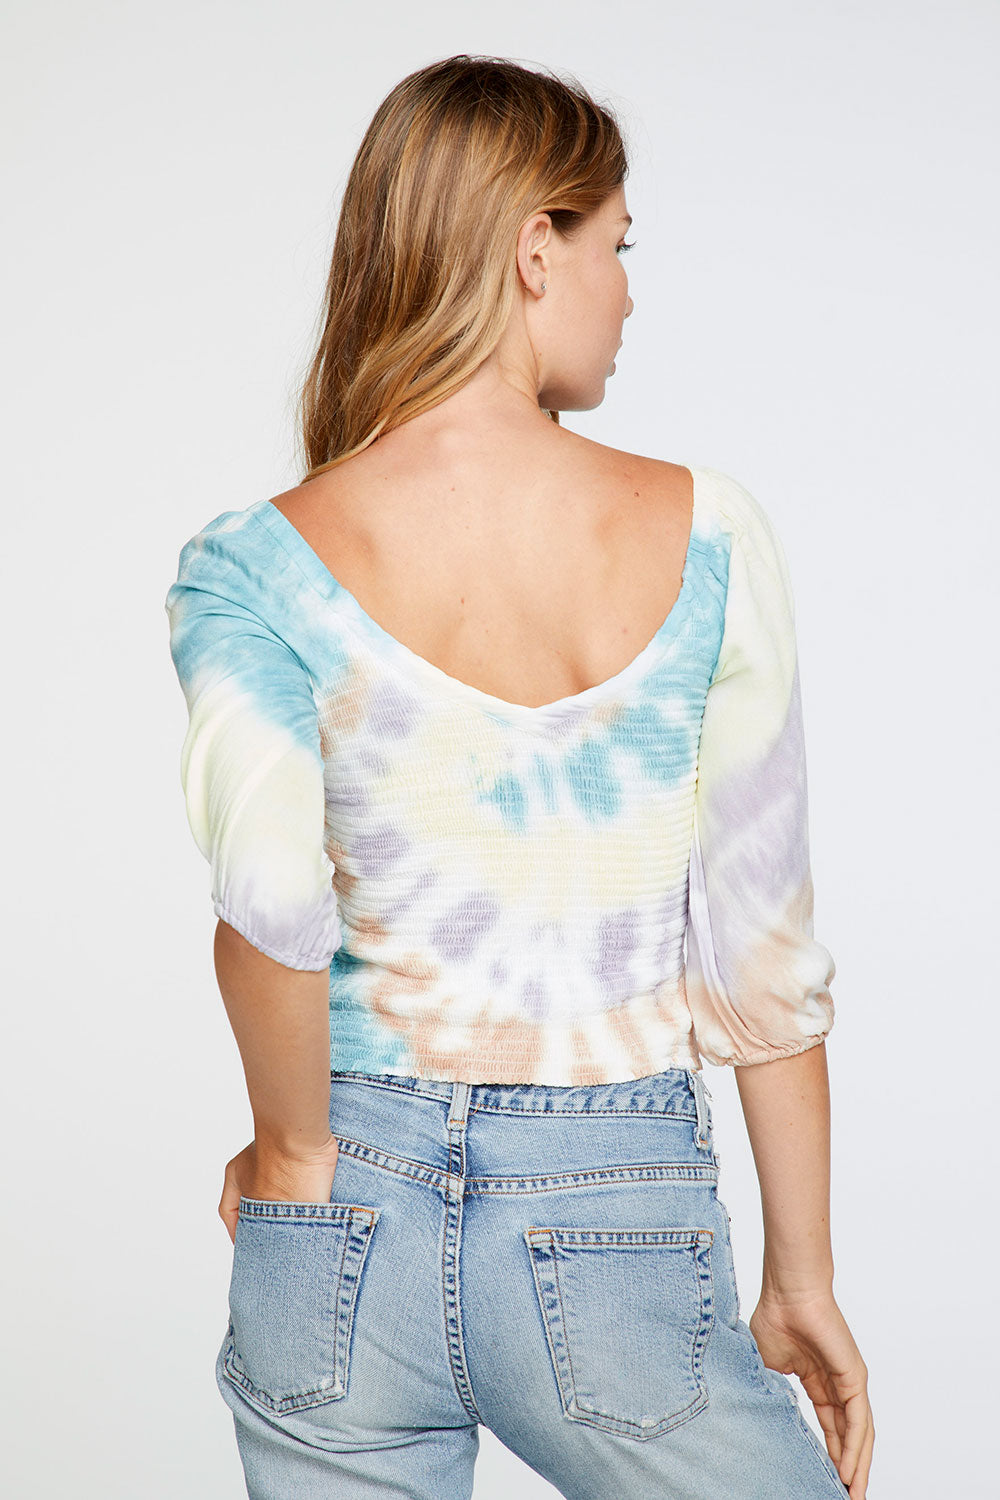 Heirloom Gauze Smocked Double V Peasant Top in Tie Dye WOMENS chaserbrand4.myshopify.com